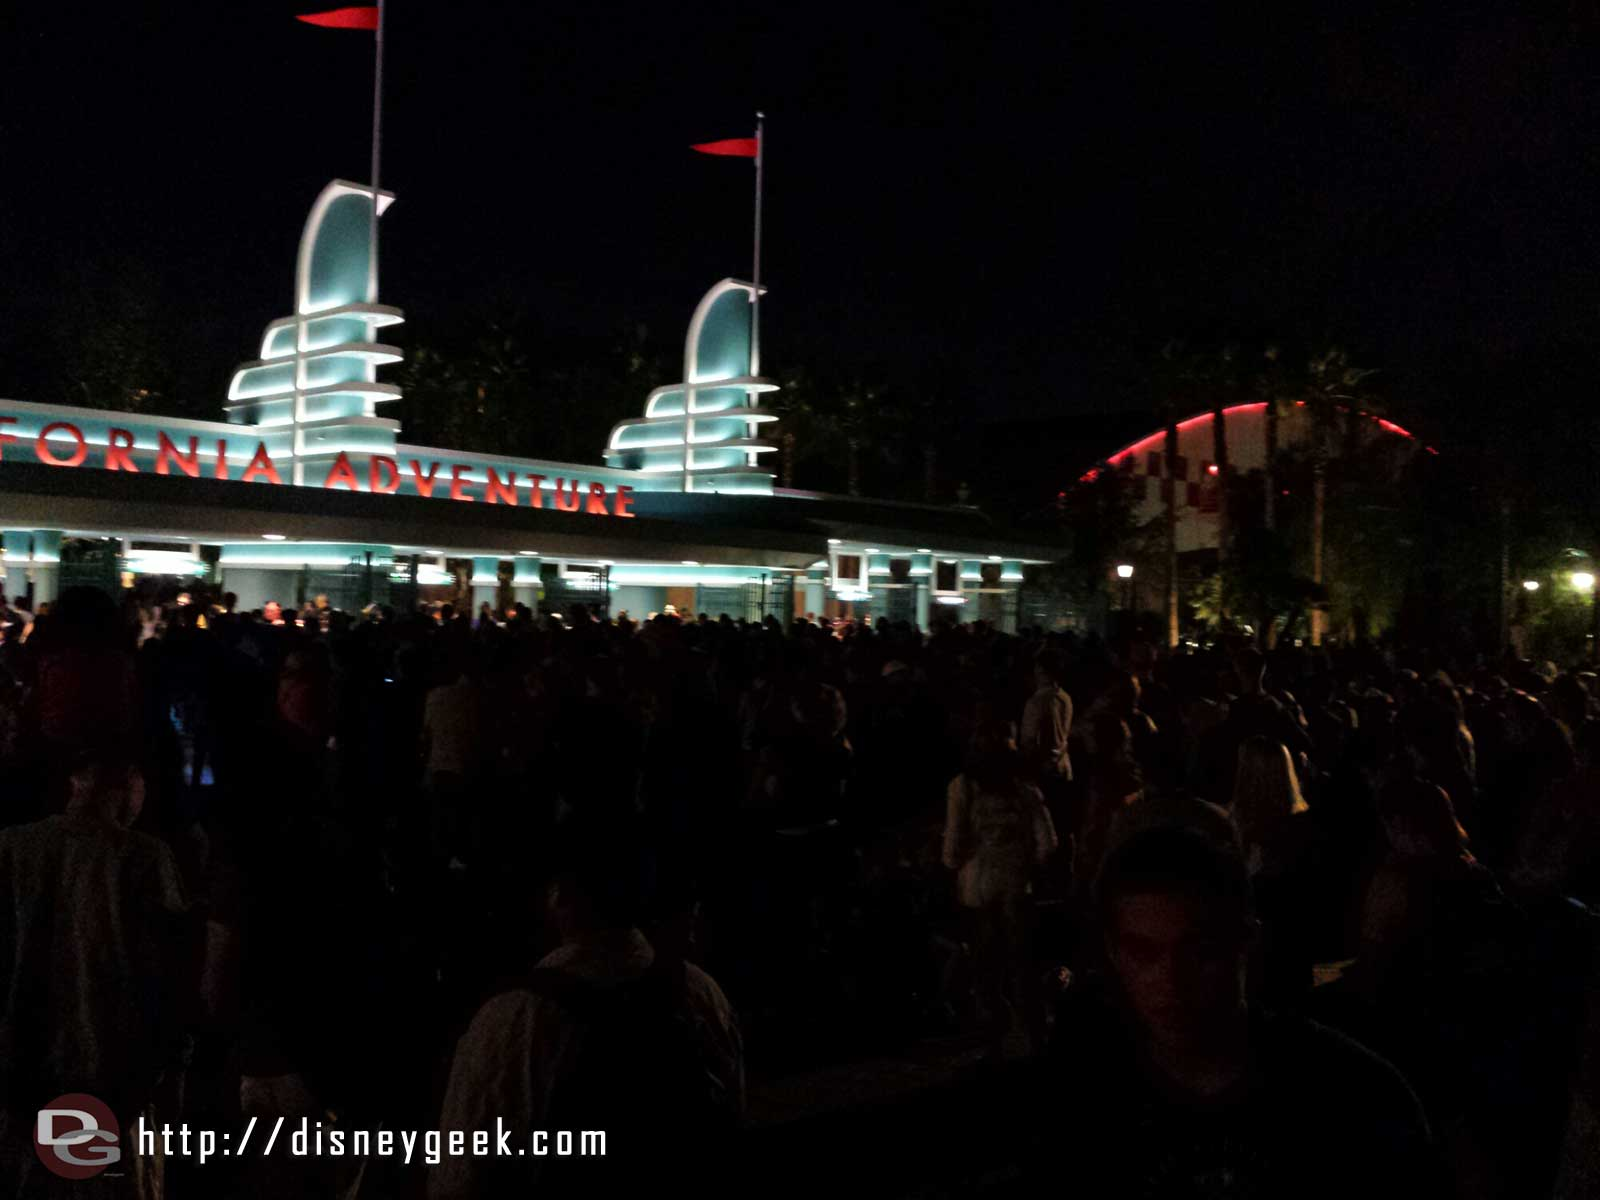 Due to #Disneyland closing for the party the lines for DCA are long